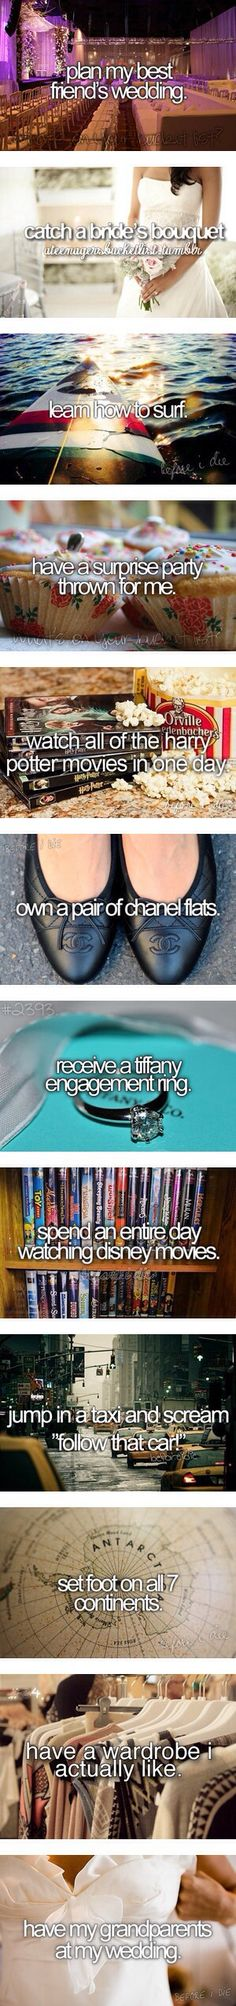 Wanna do all especially watch Harry potter. Love those and to be honest I don't care what kind of ring I get as long as its from the heart.